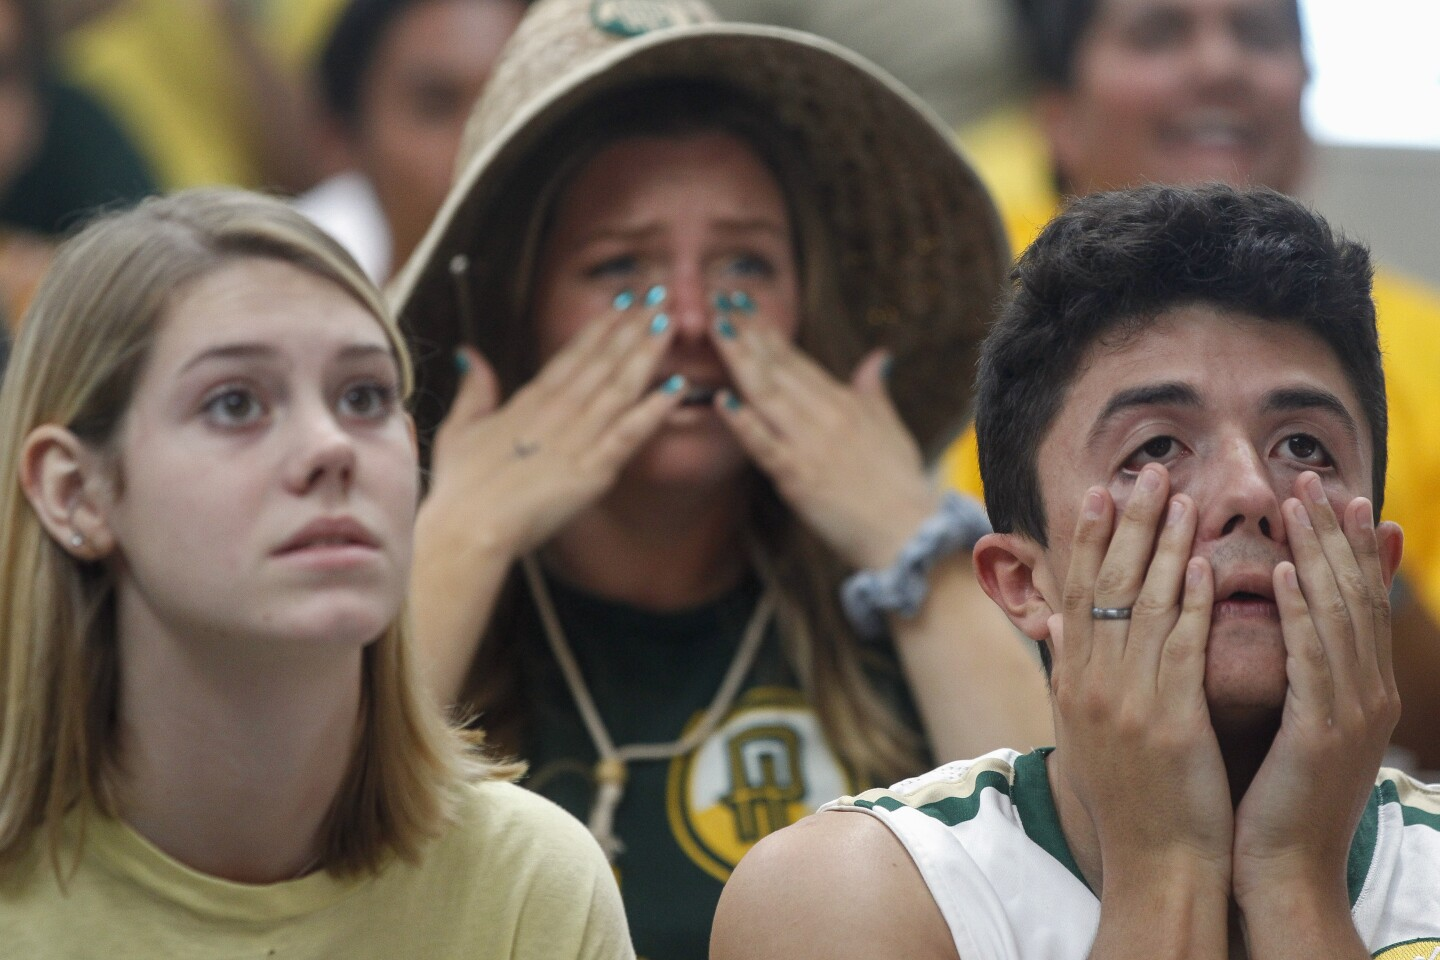 Point Loma Nazarene University students, from left, Nicole Petrie, Lindsey Peterson, and Shane Gurule, watch the hope for their team to win a NCAA Division II championship game slip away as Northwest Missouri State leads in the final seconds.